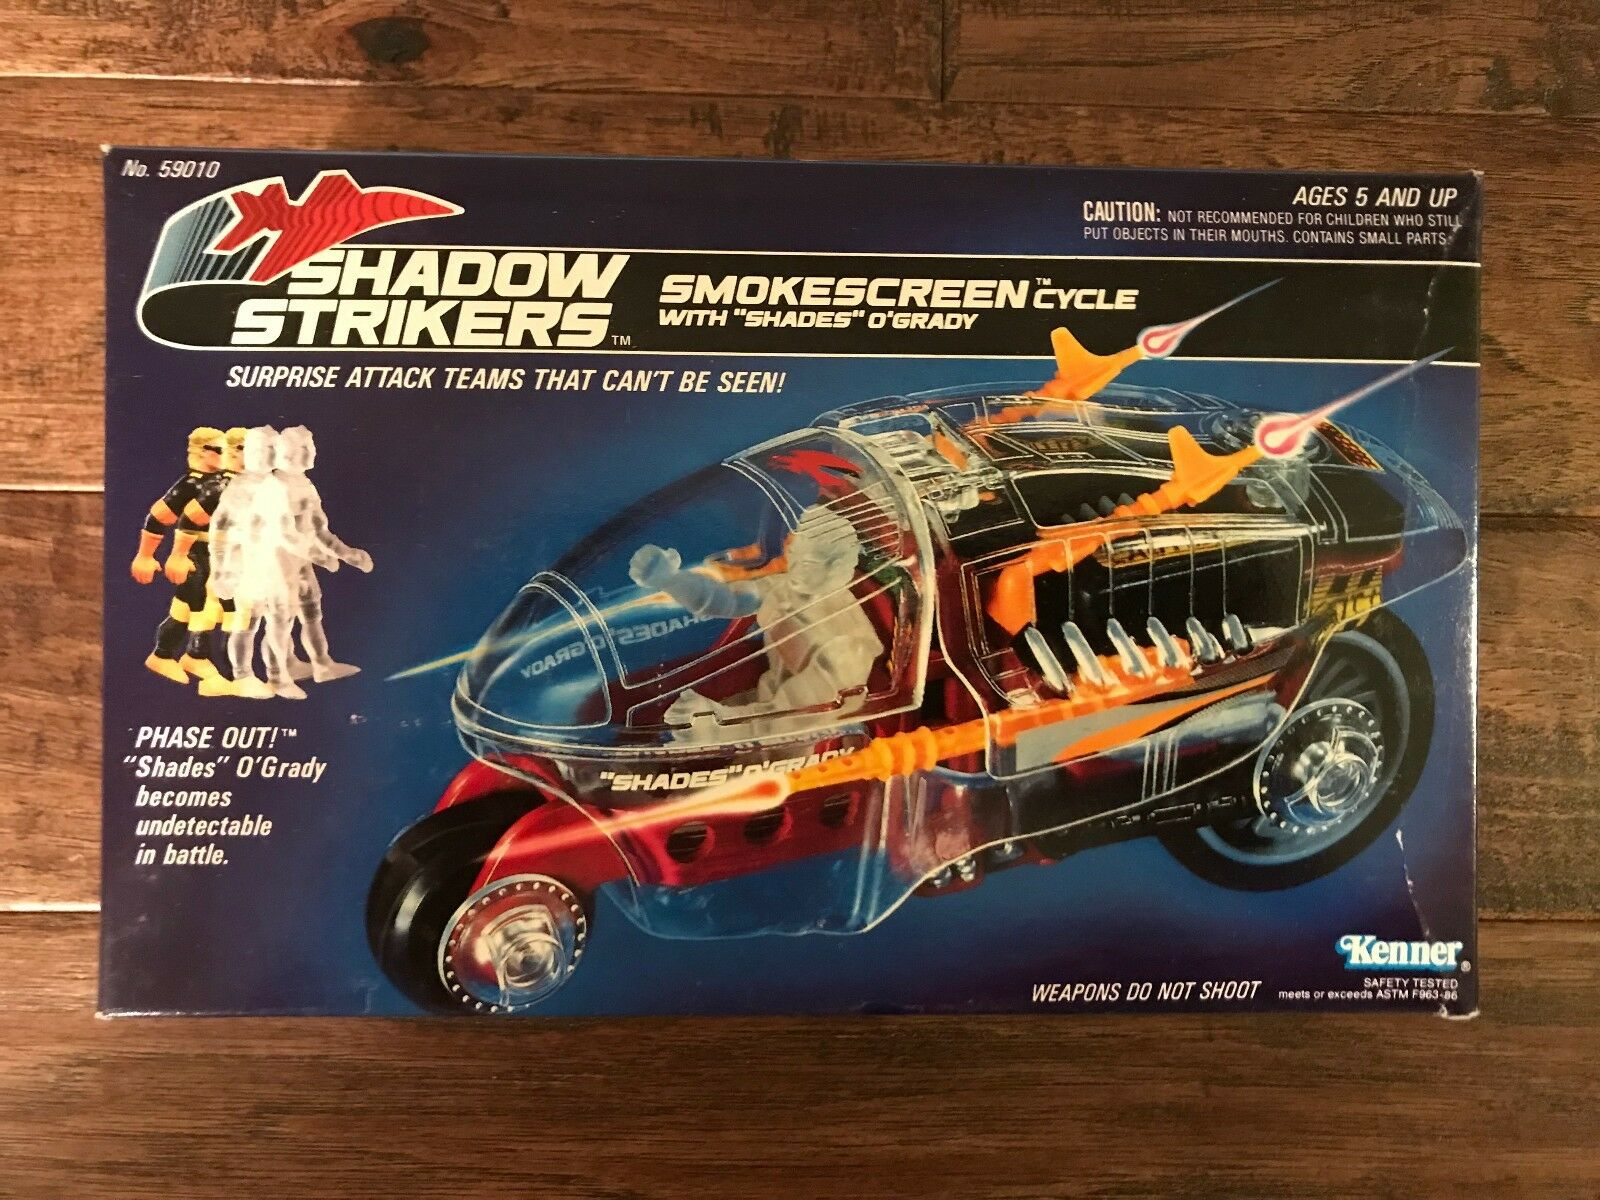 1990 Kenner    SHADOW STRIKERS  SMOKESCREEN CYCLE WITH SHADES O'GRADY Vehicle NEW  0fc10d